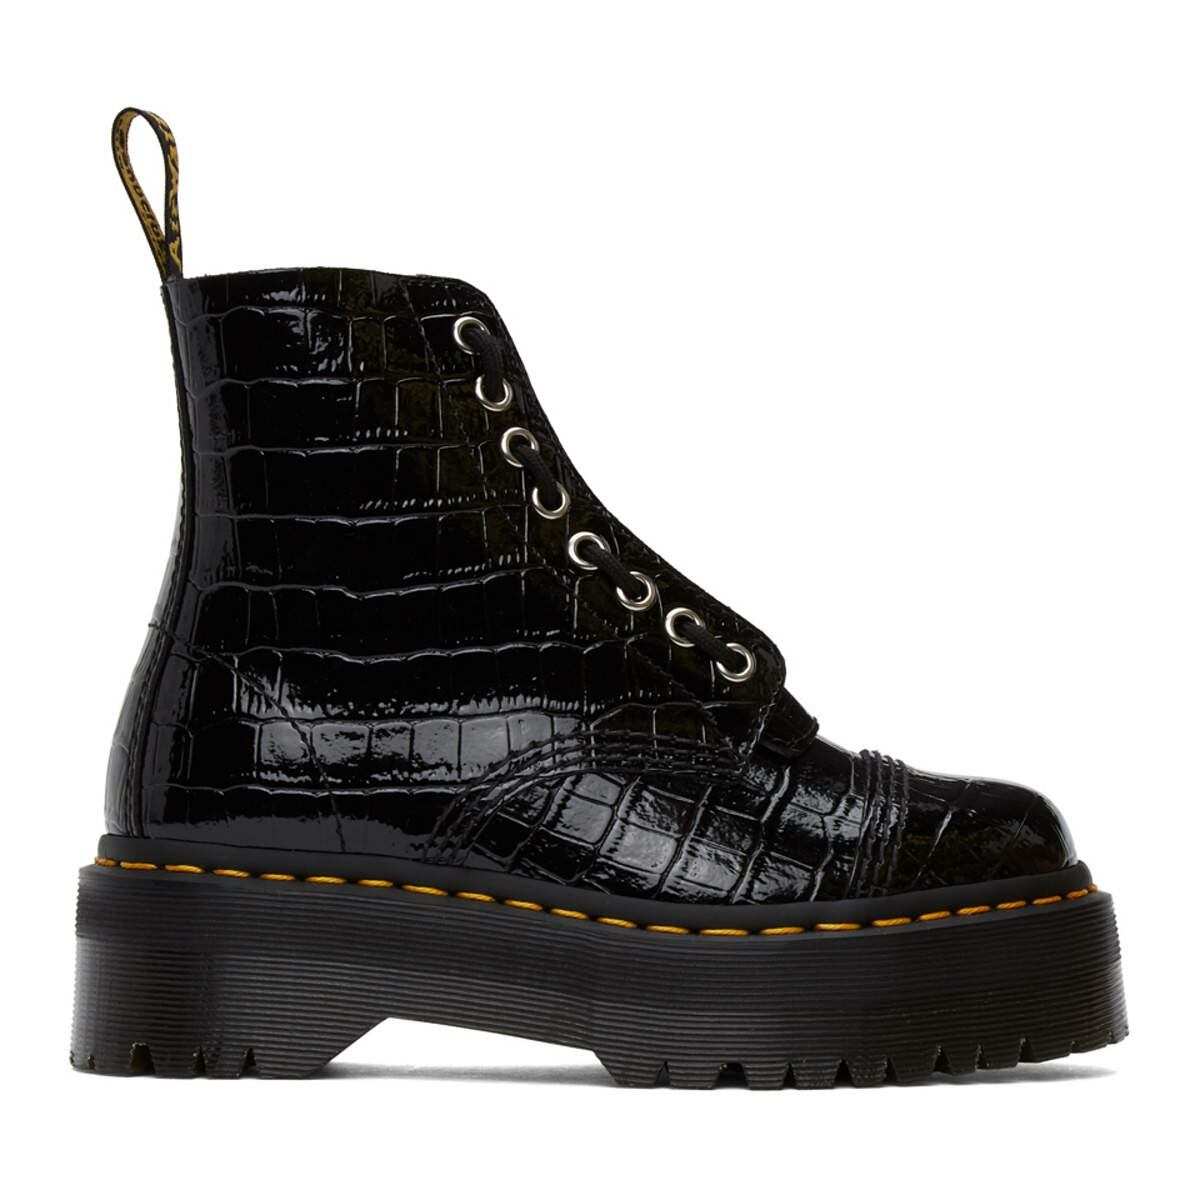 Dr. Martens Black Croc Sinclair Zip Boots Ssense USA WOMEN Women SHOES Womens ANKLE BOOTS